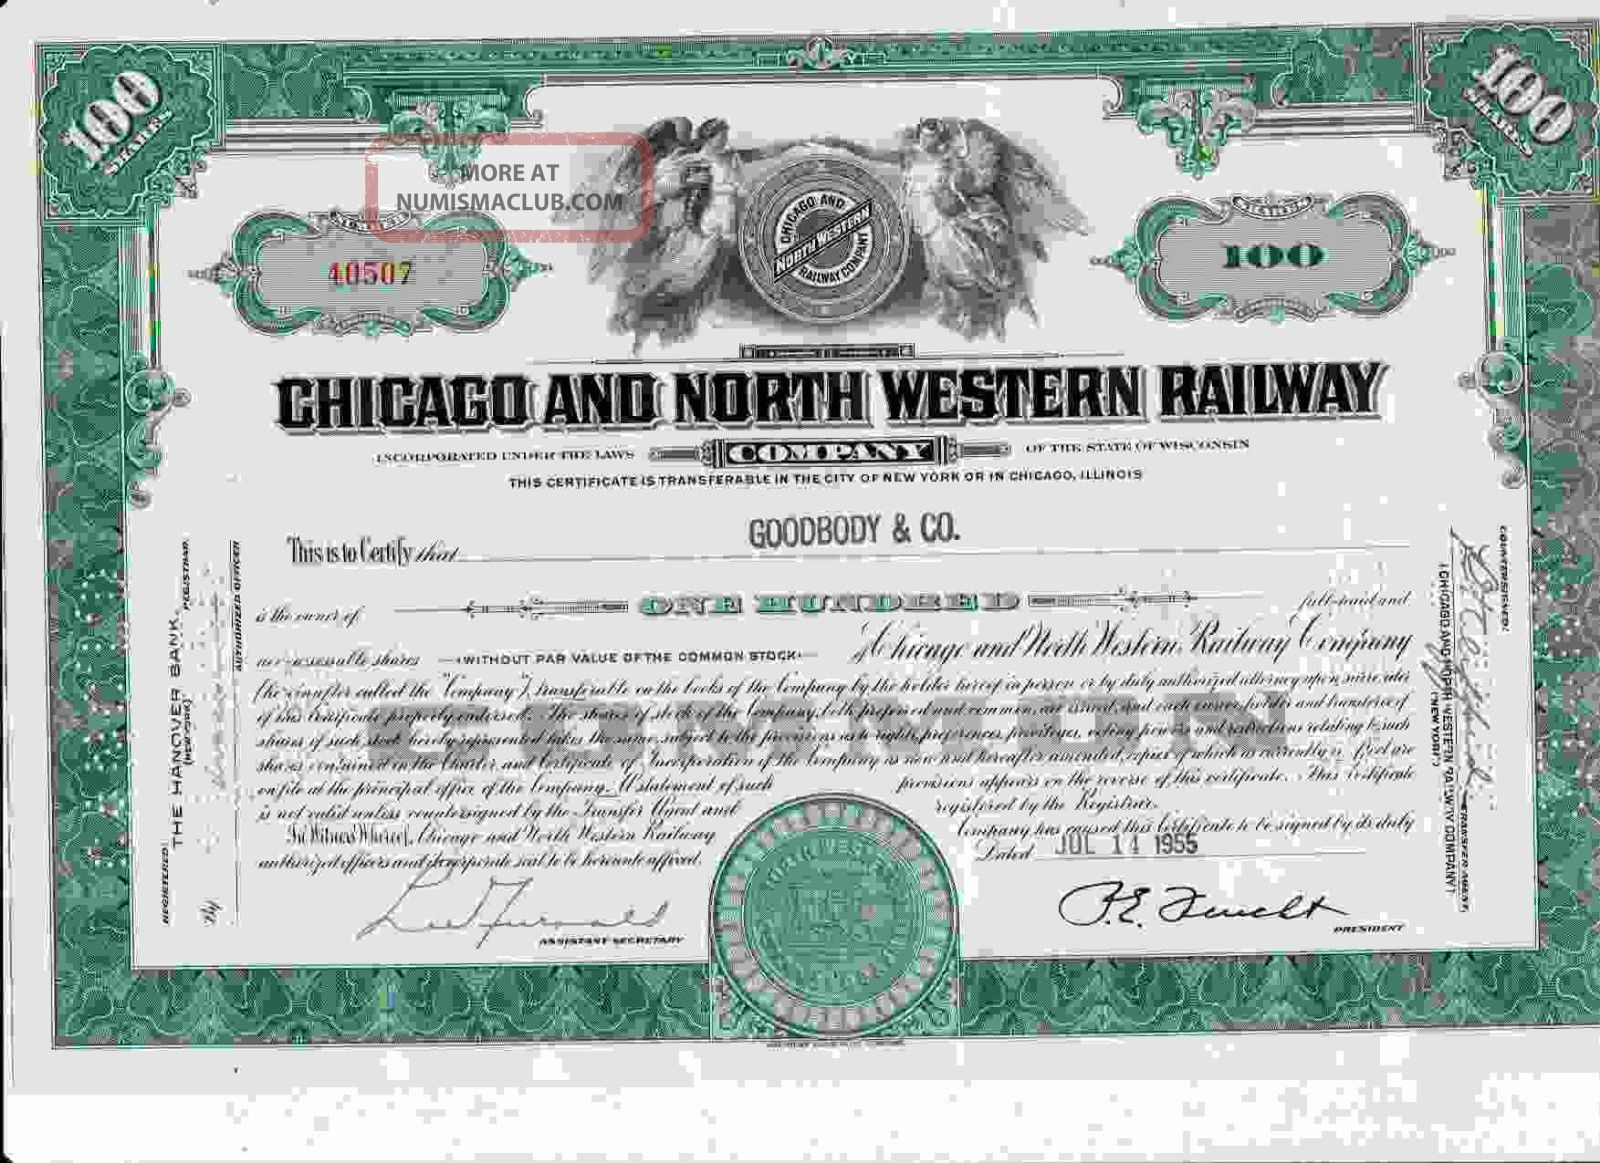 40507 Green Chicago & North Western Railway Company Stock Certificate Railroad Transportation photo